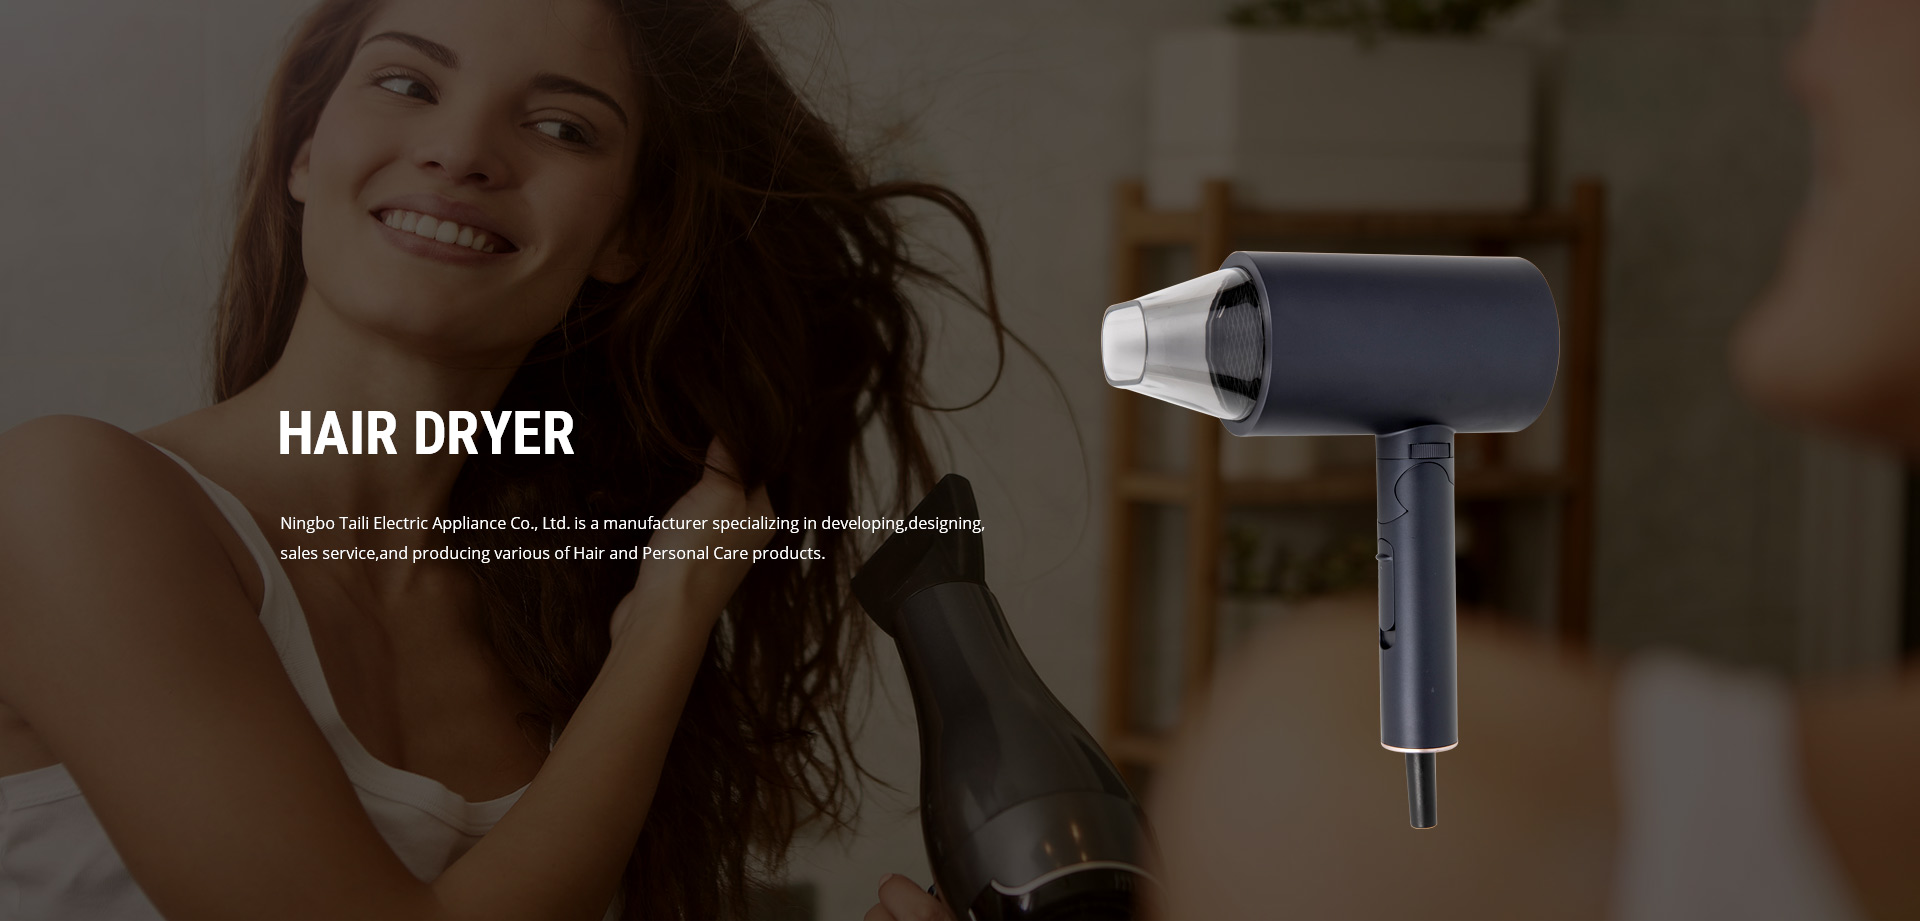 hair dryer products banner